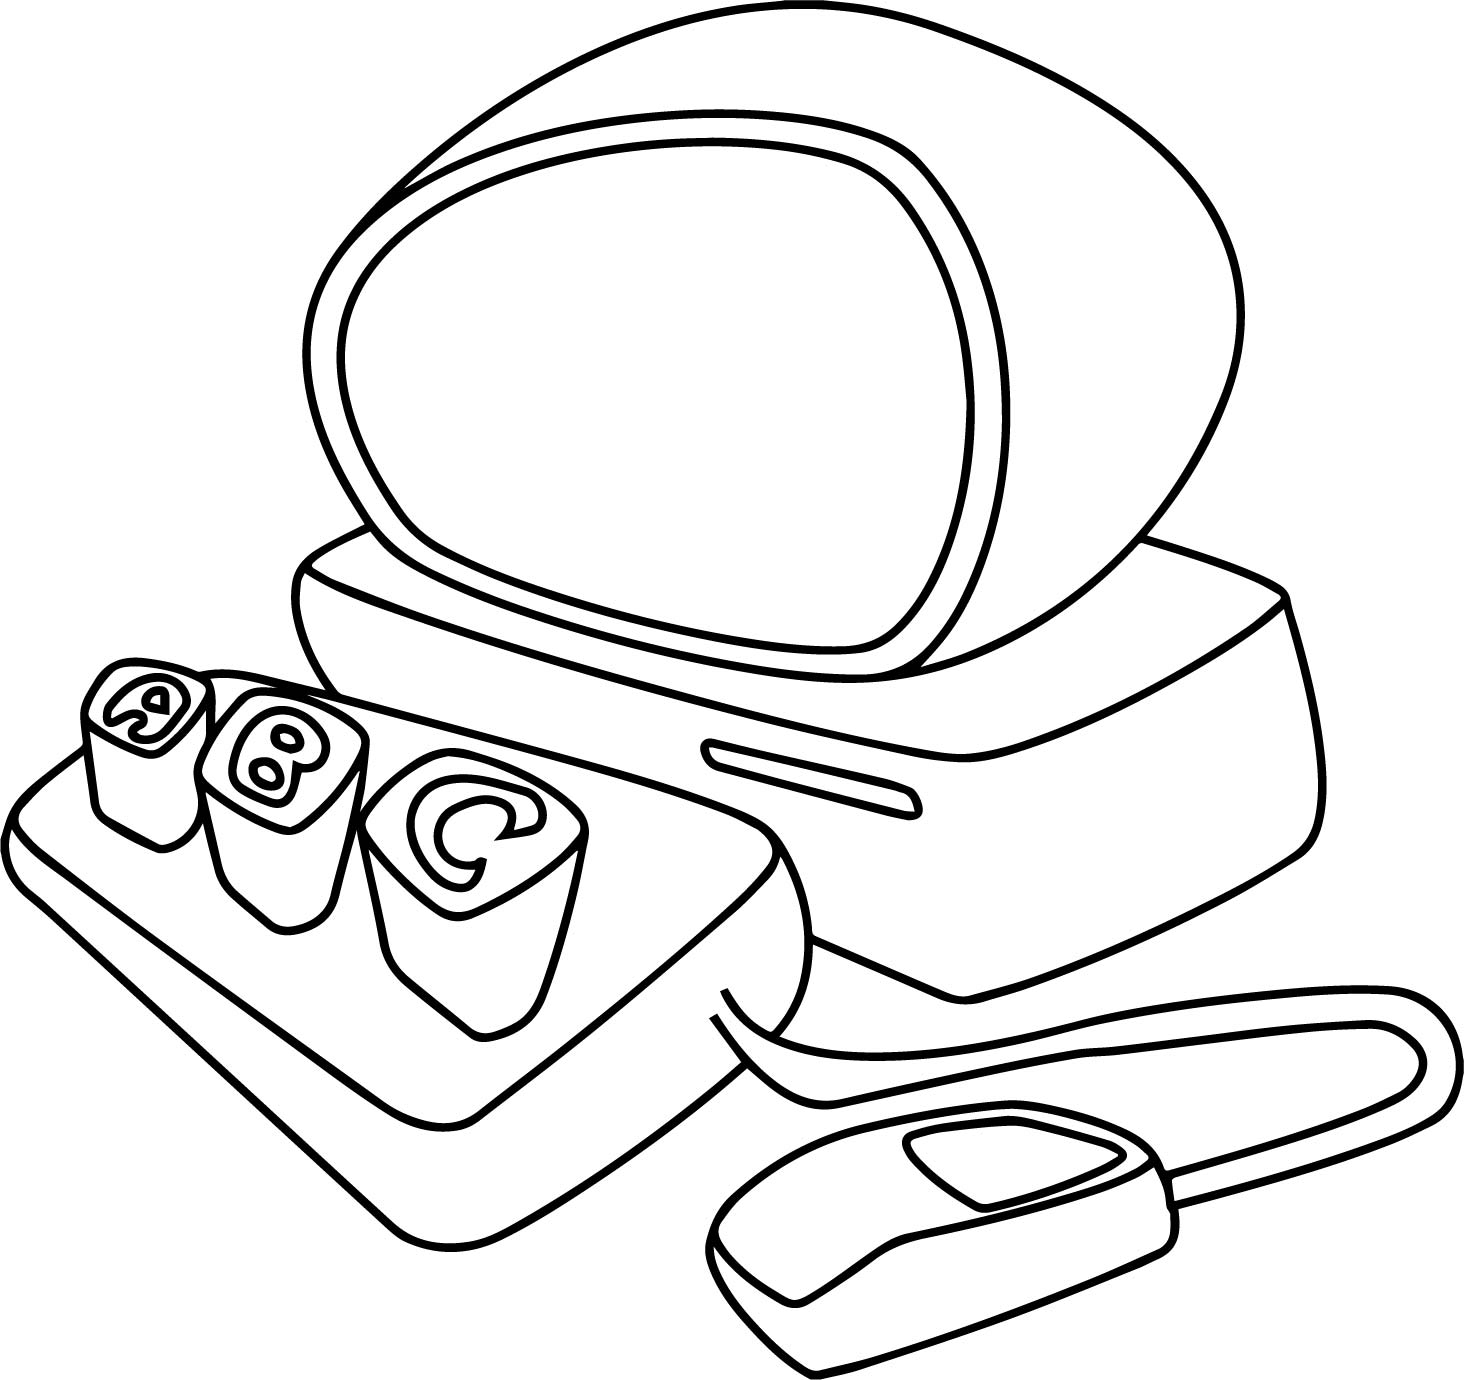 Abc Desktop Computer Coloring Page